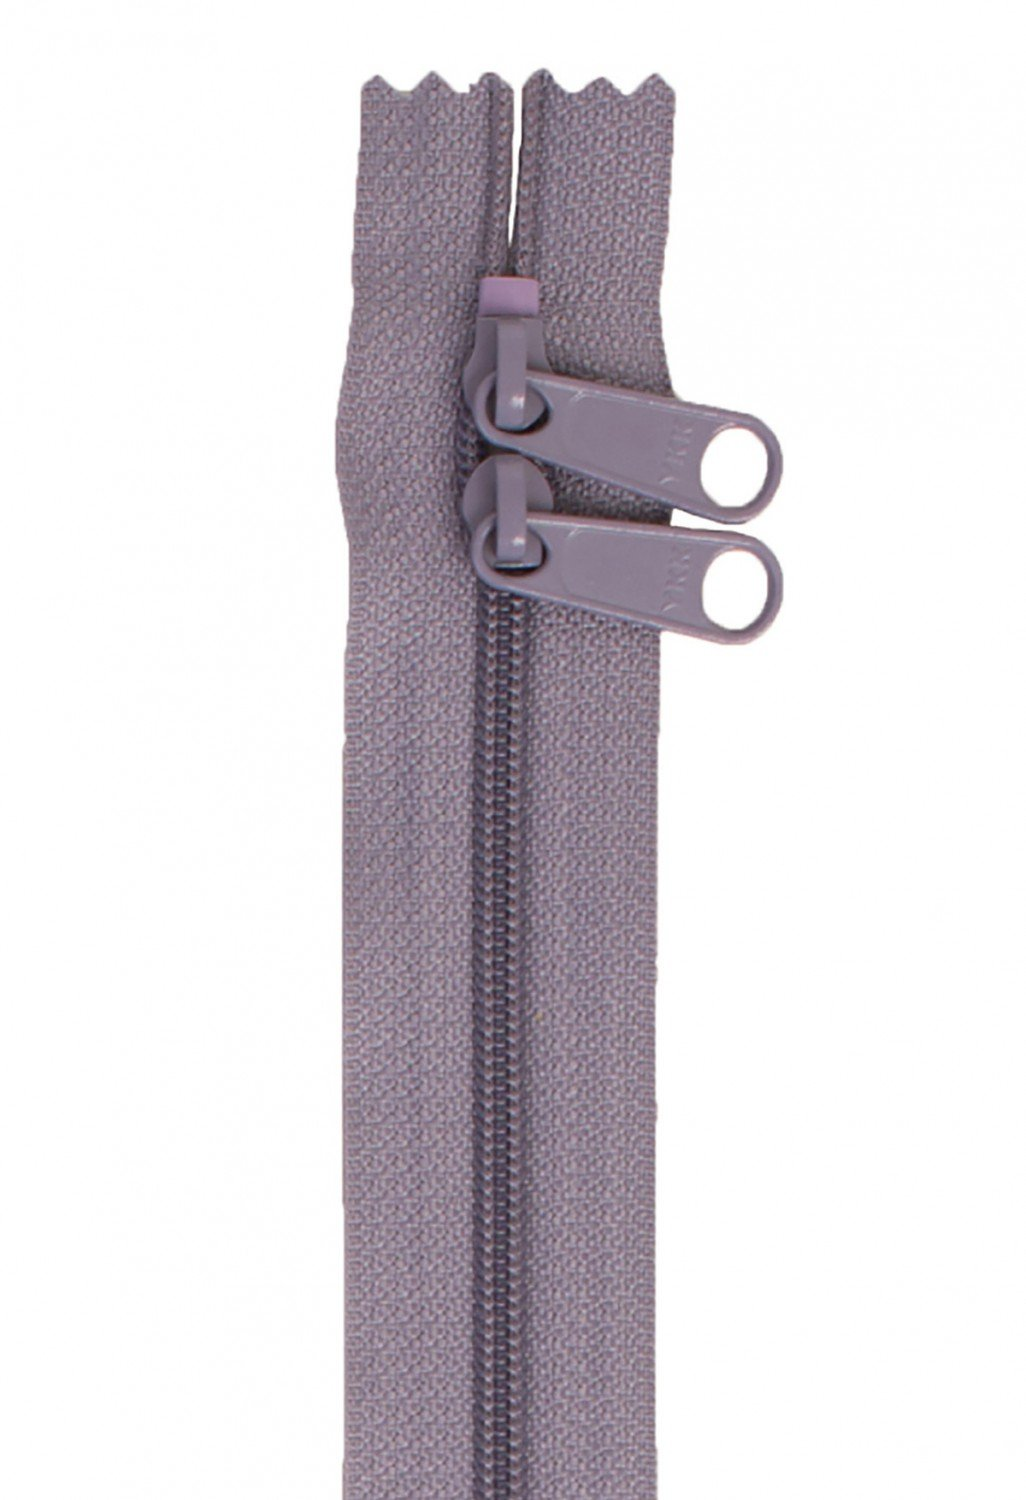 Annie's Handbag Zipper - Gunmetal Grey